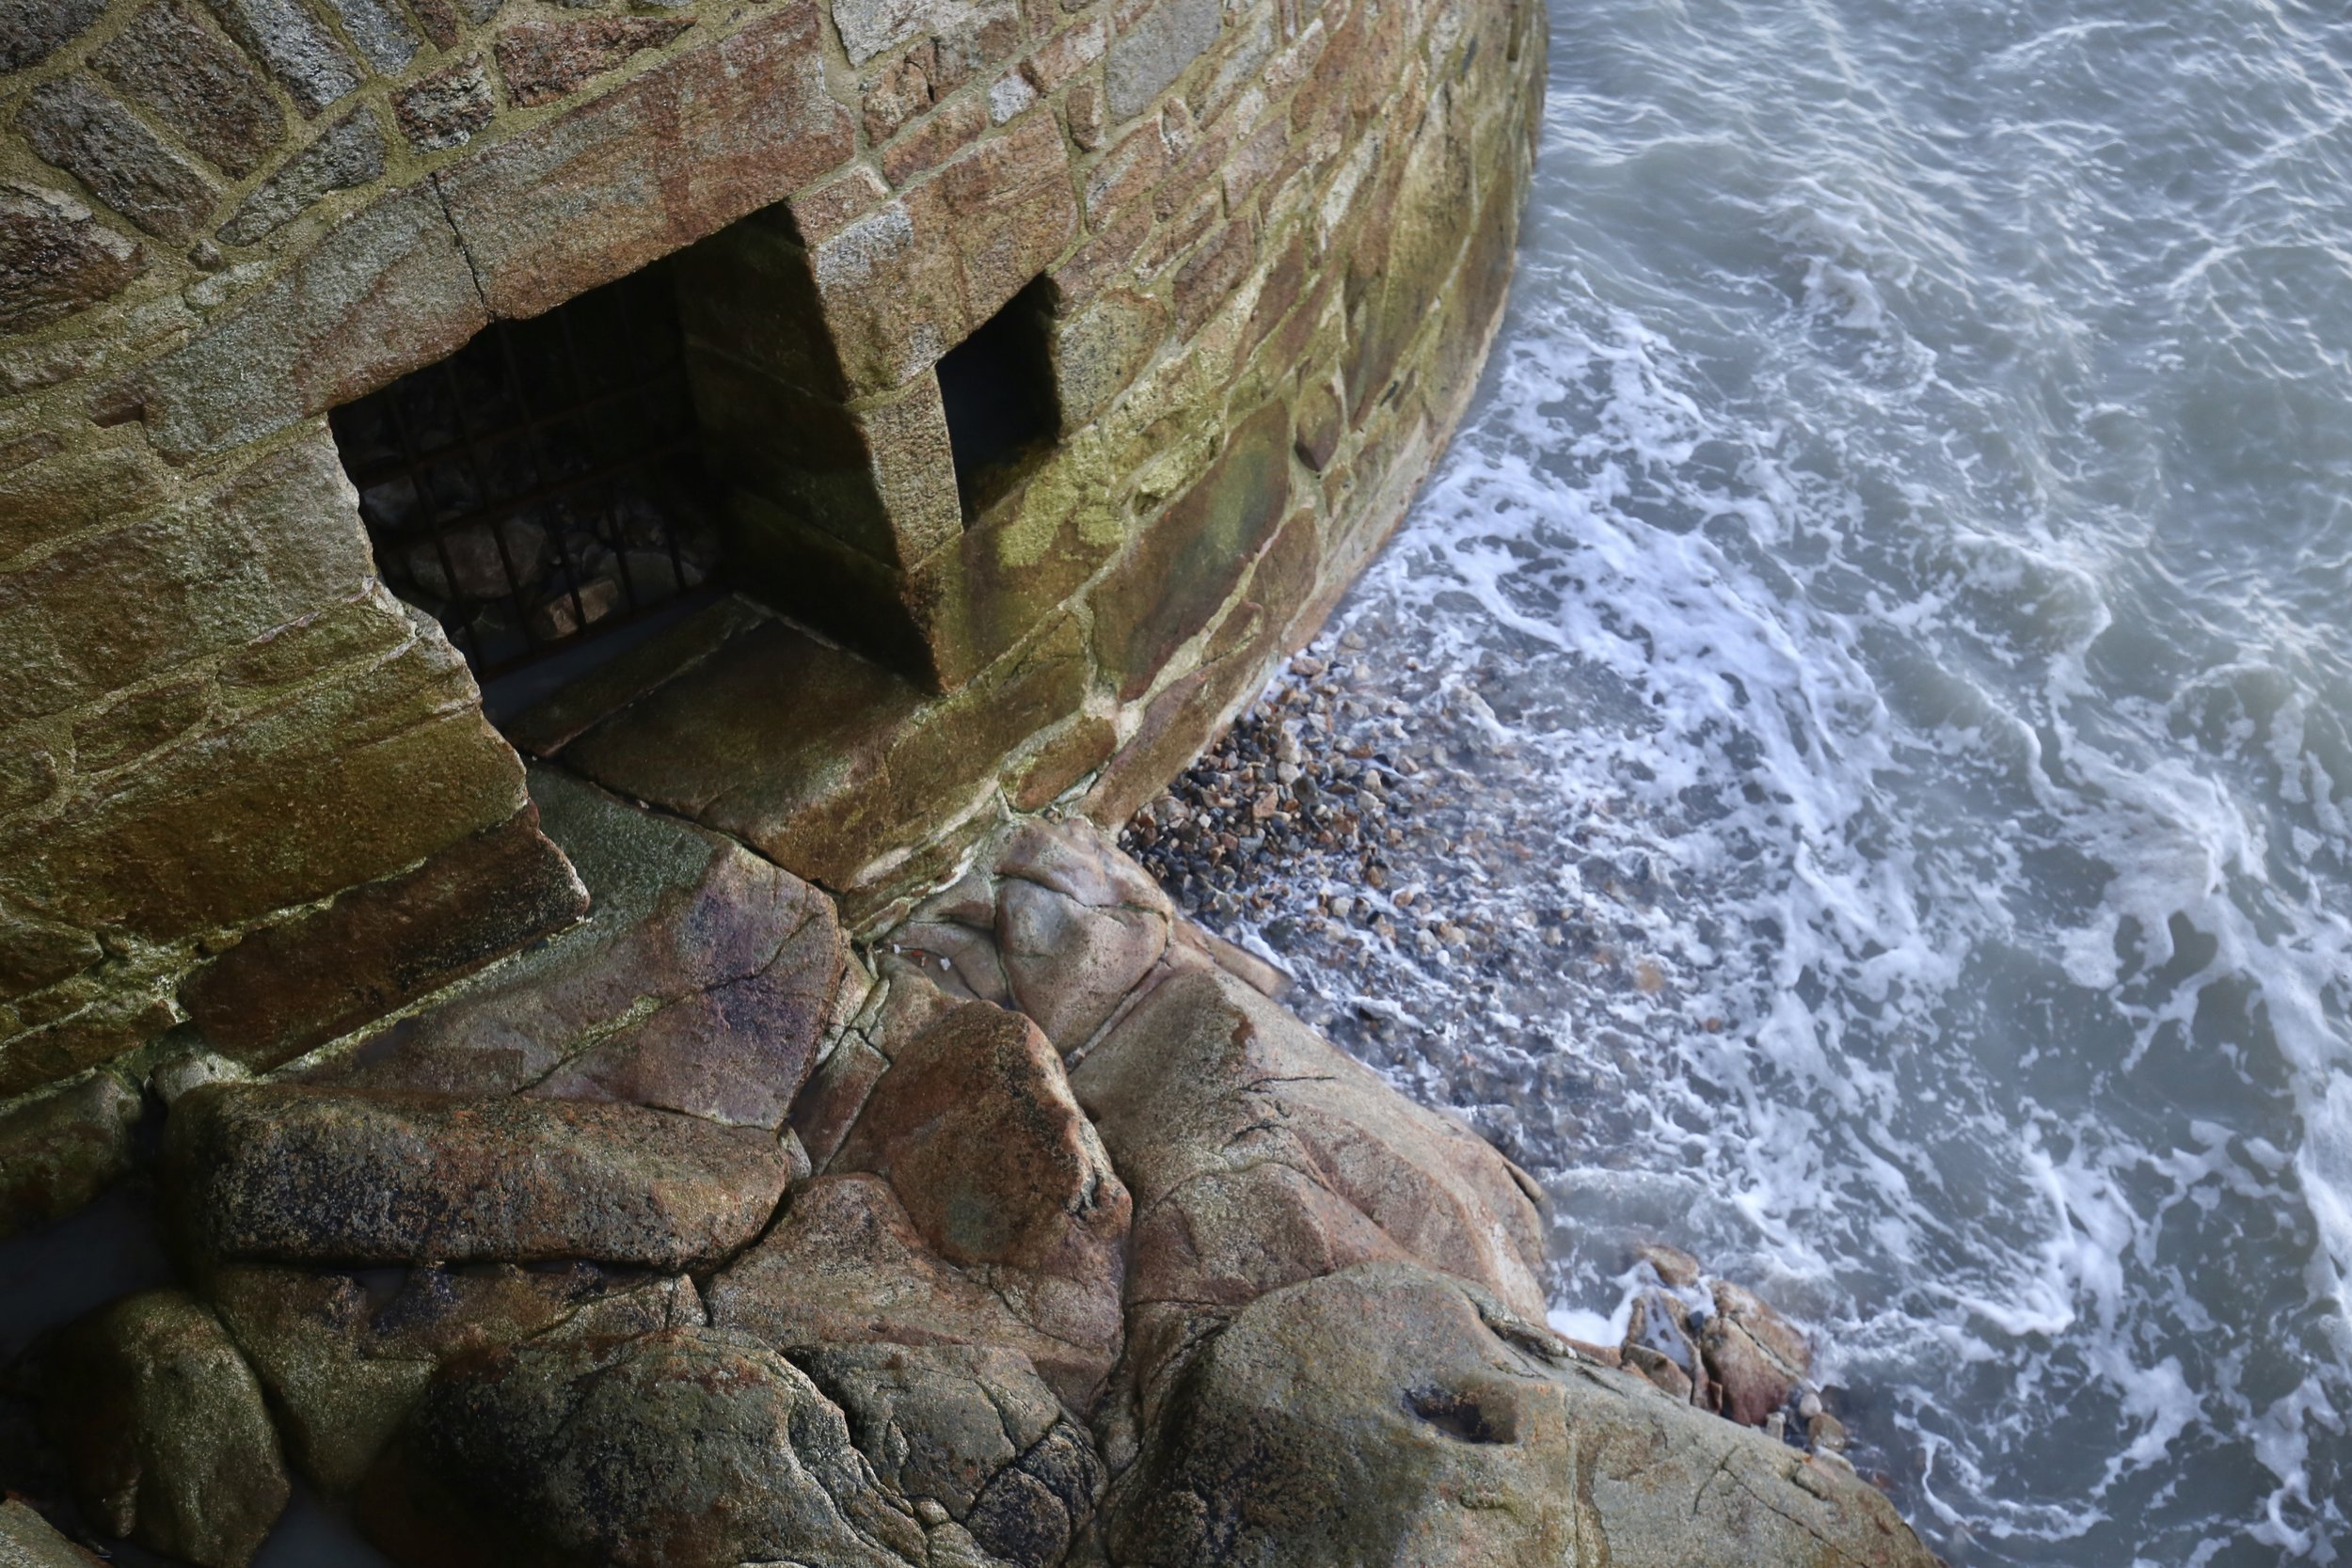 Waves of the sea on a medieval island - a castle door by the sea.